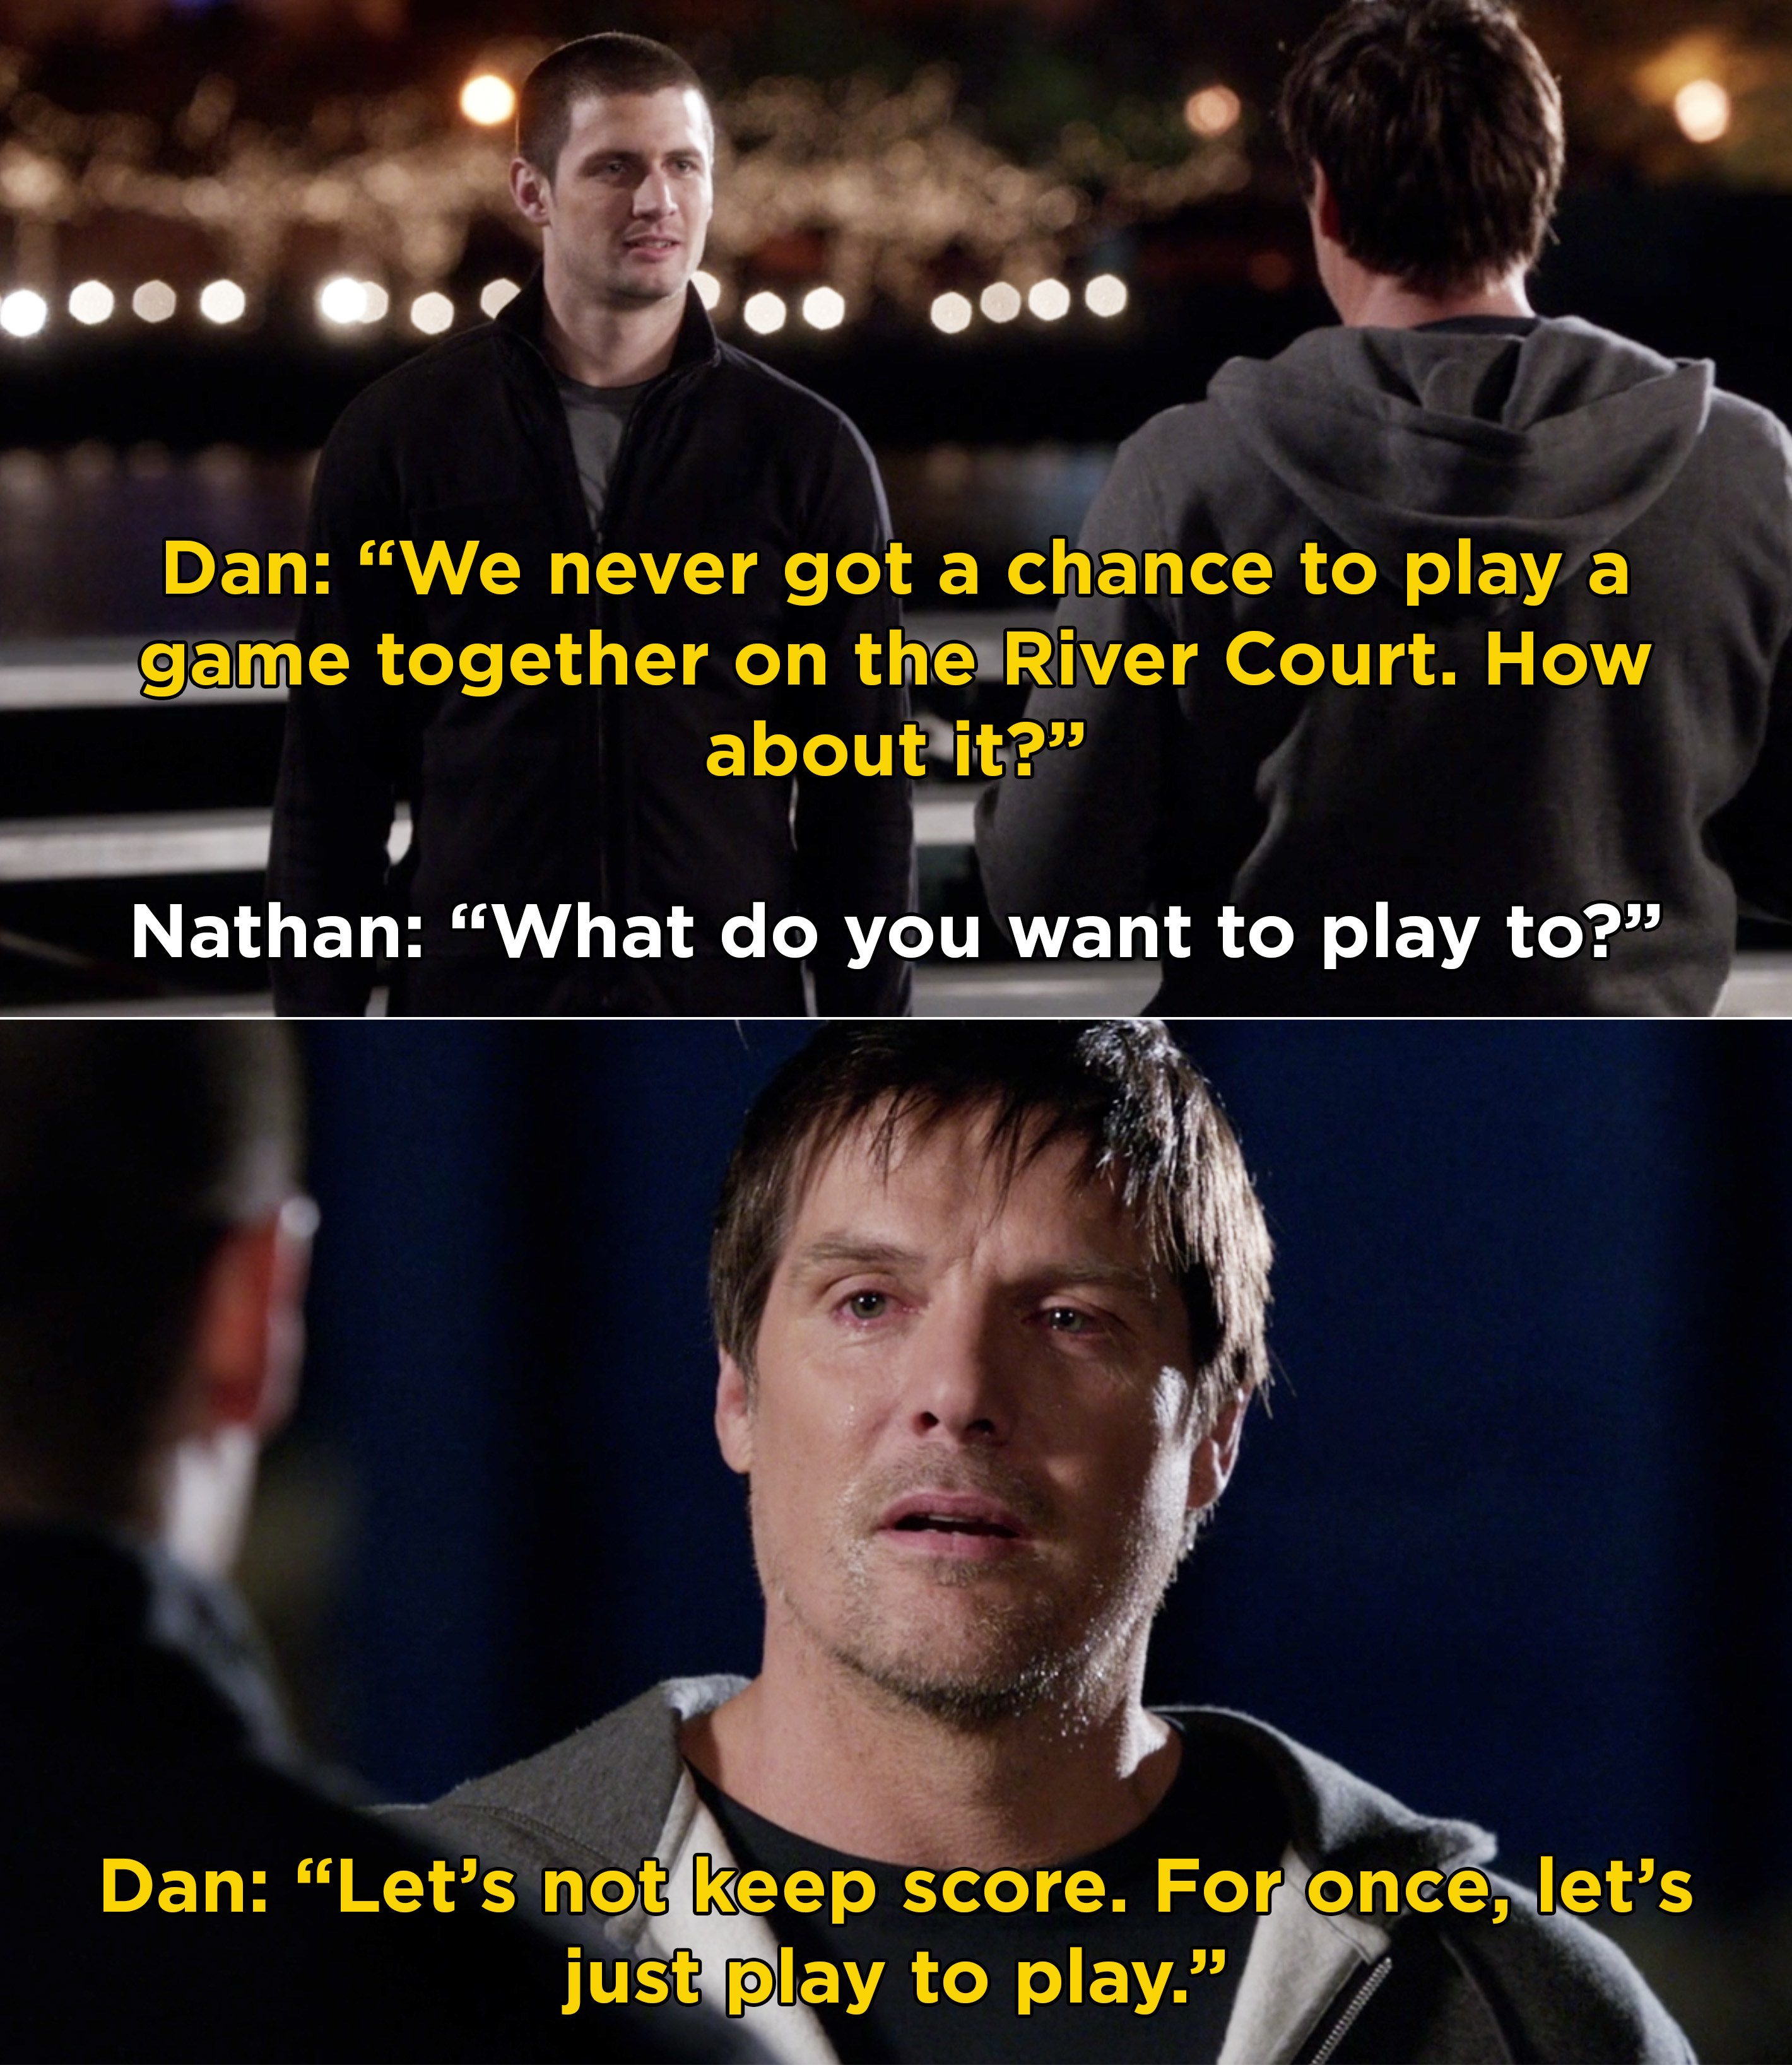 Dan asking Nathan to play a game on the River Court, but not to keep score